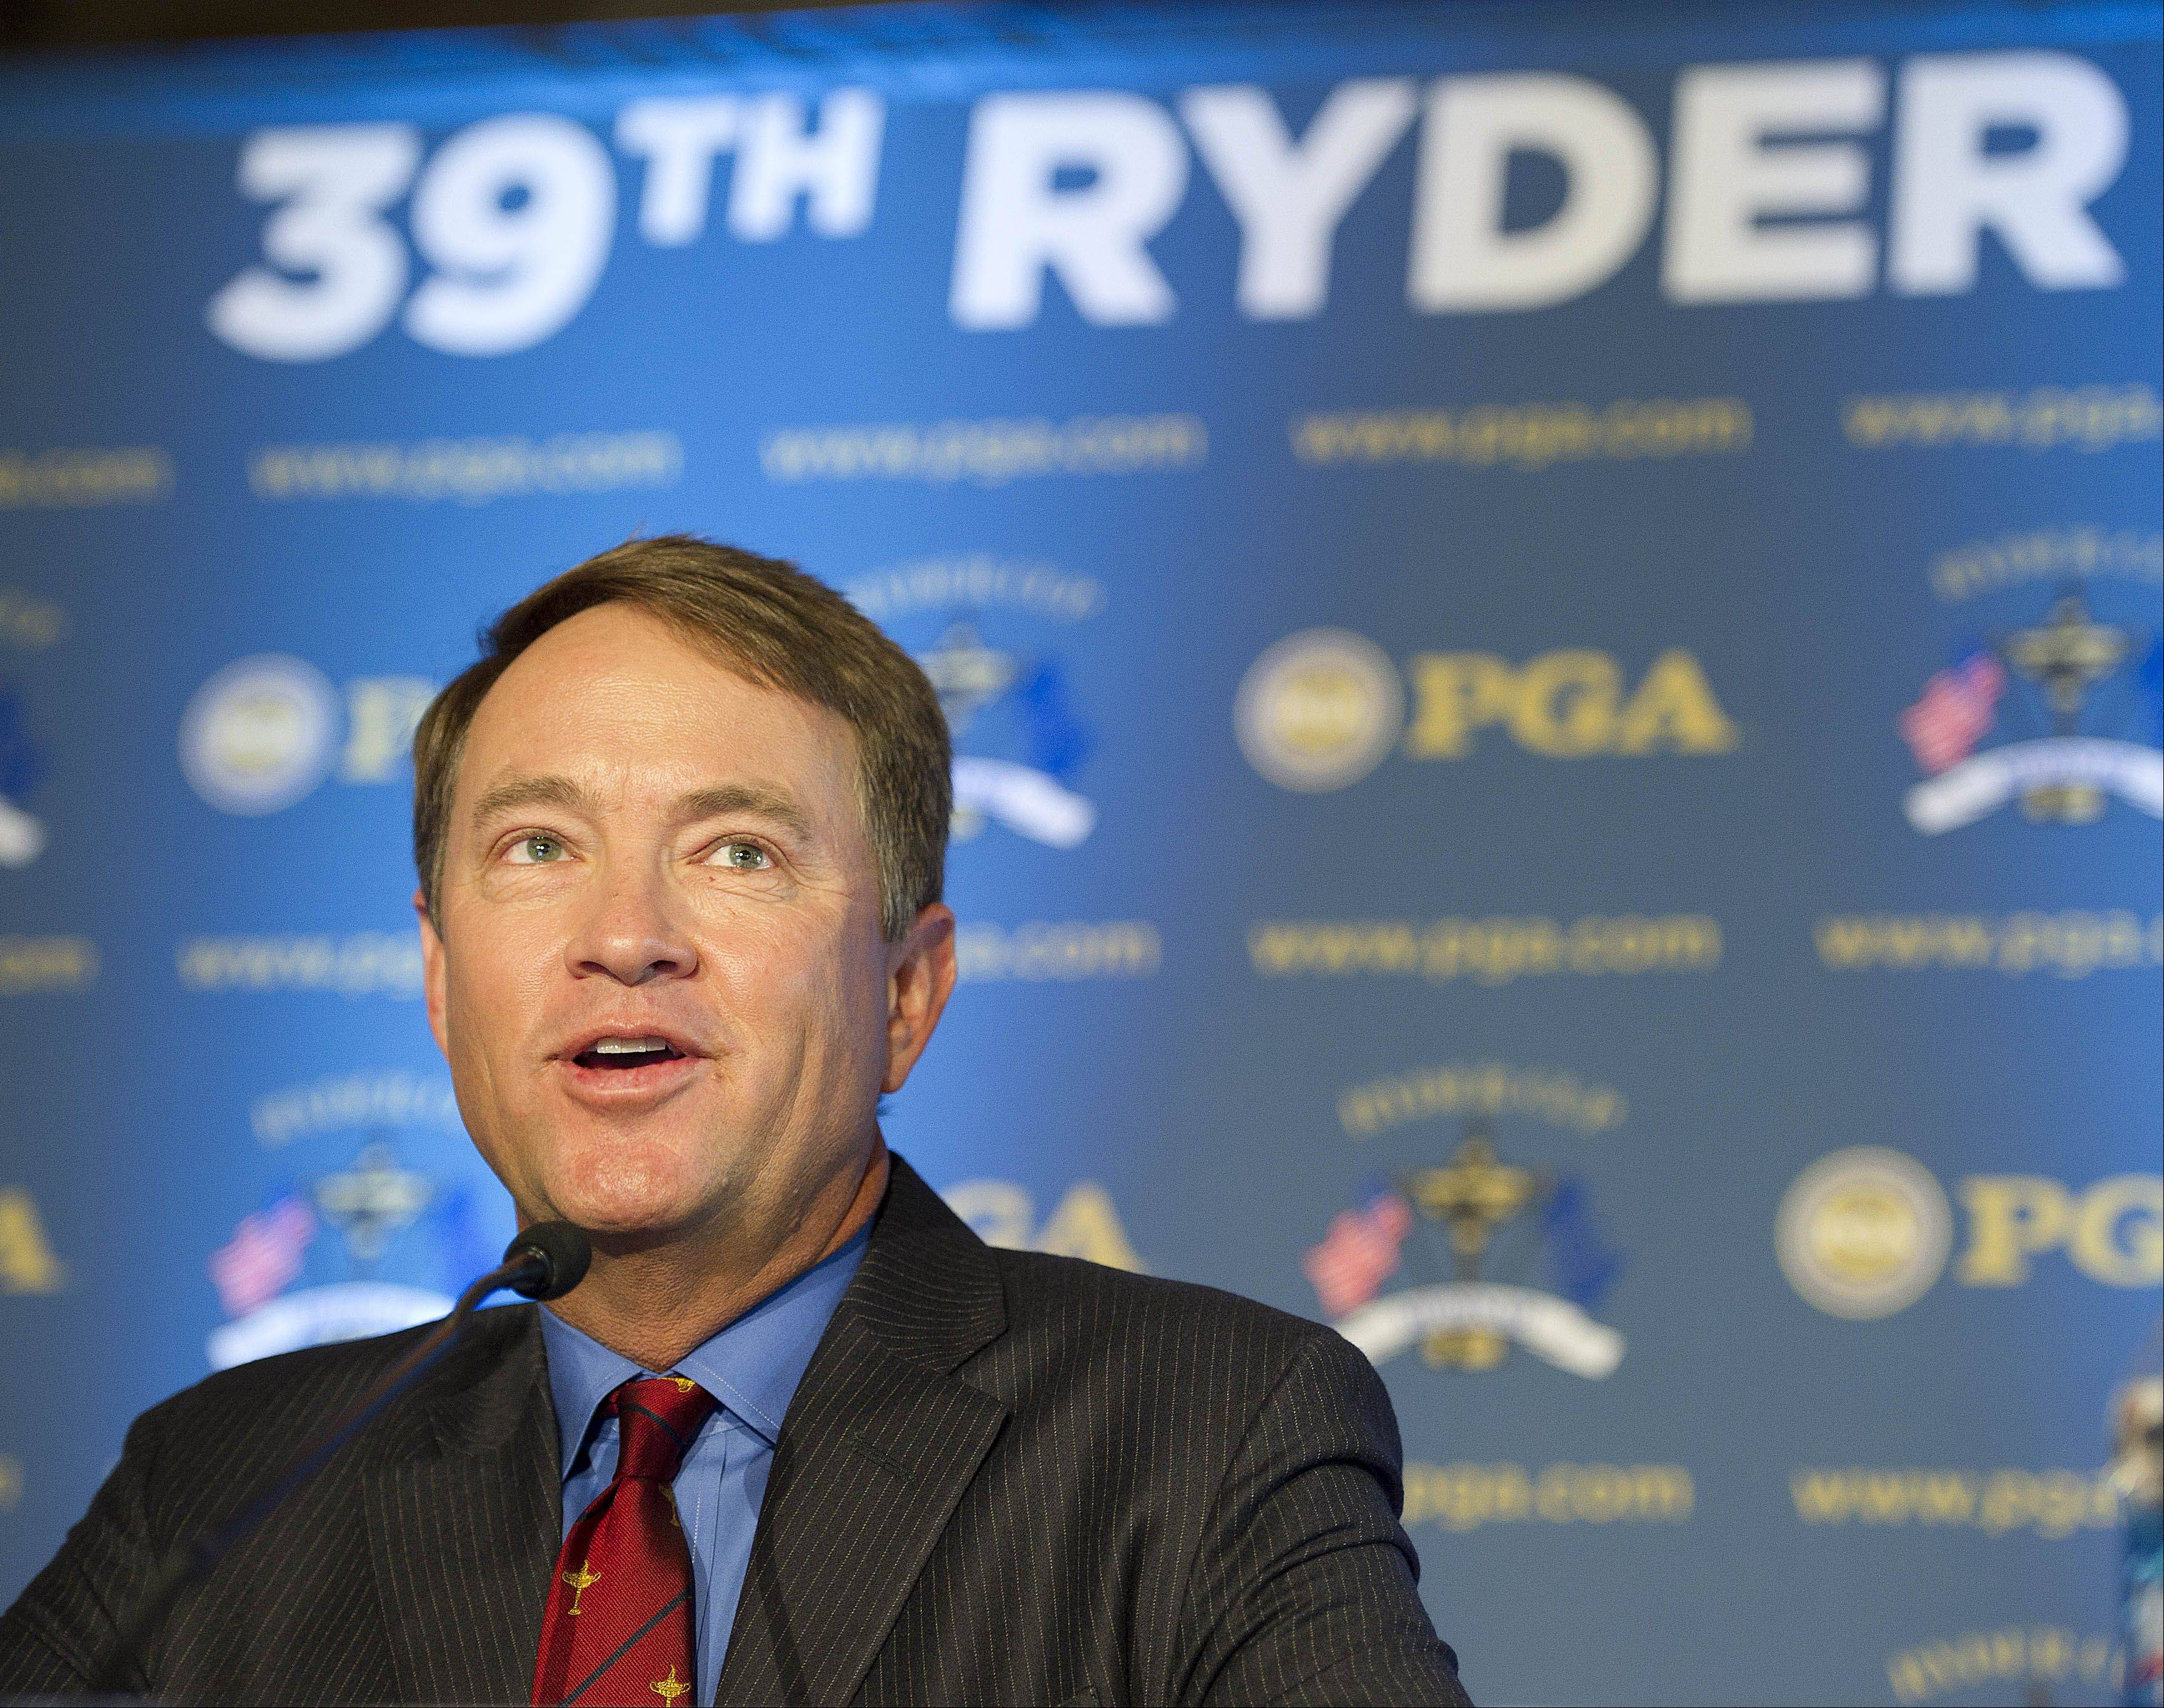 United States Ryder Cup captain Davis Love III will join European captain Jose Maria Olazabal at a special event next month at the Chicago Theatre to promote the 2012 event at Medinah Country Club. Tickets went on sale today.